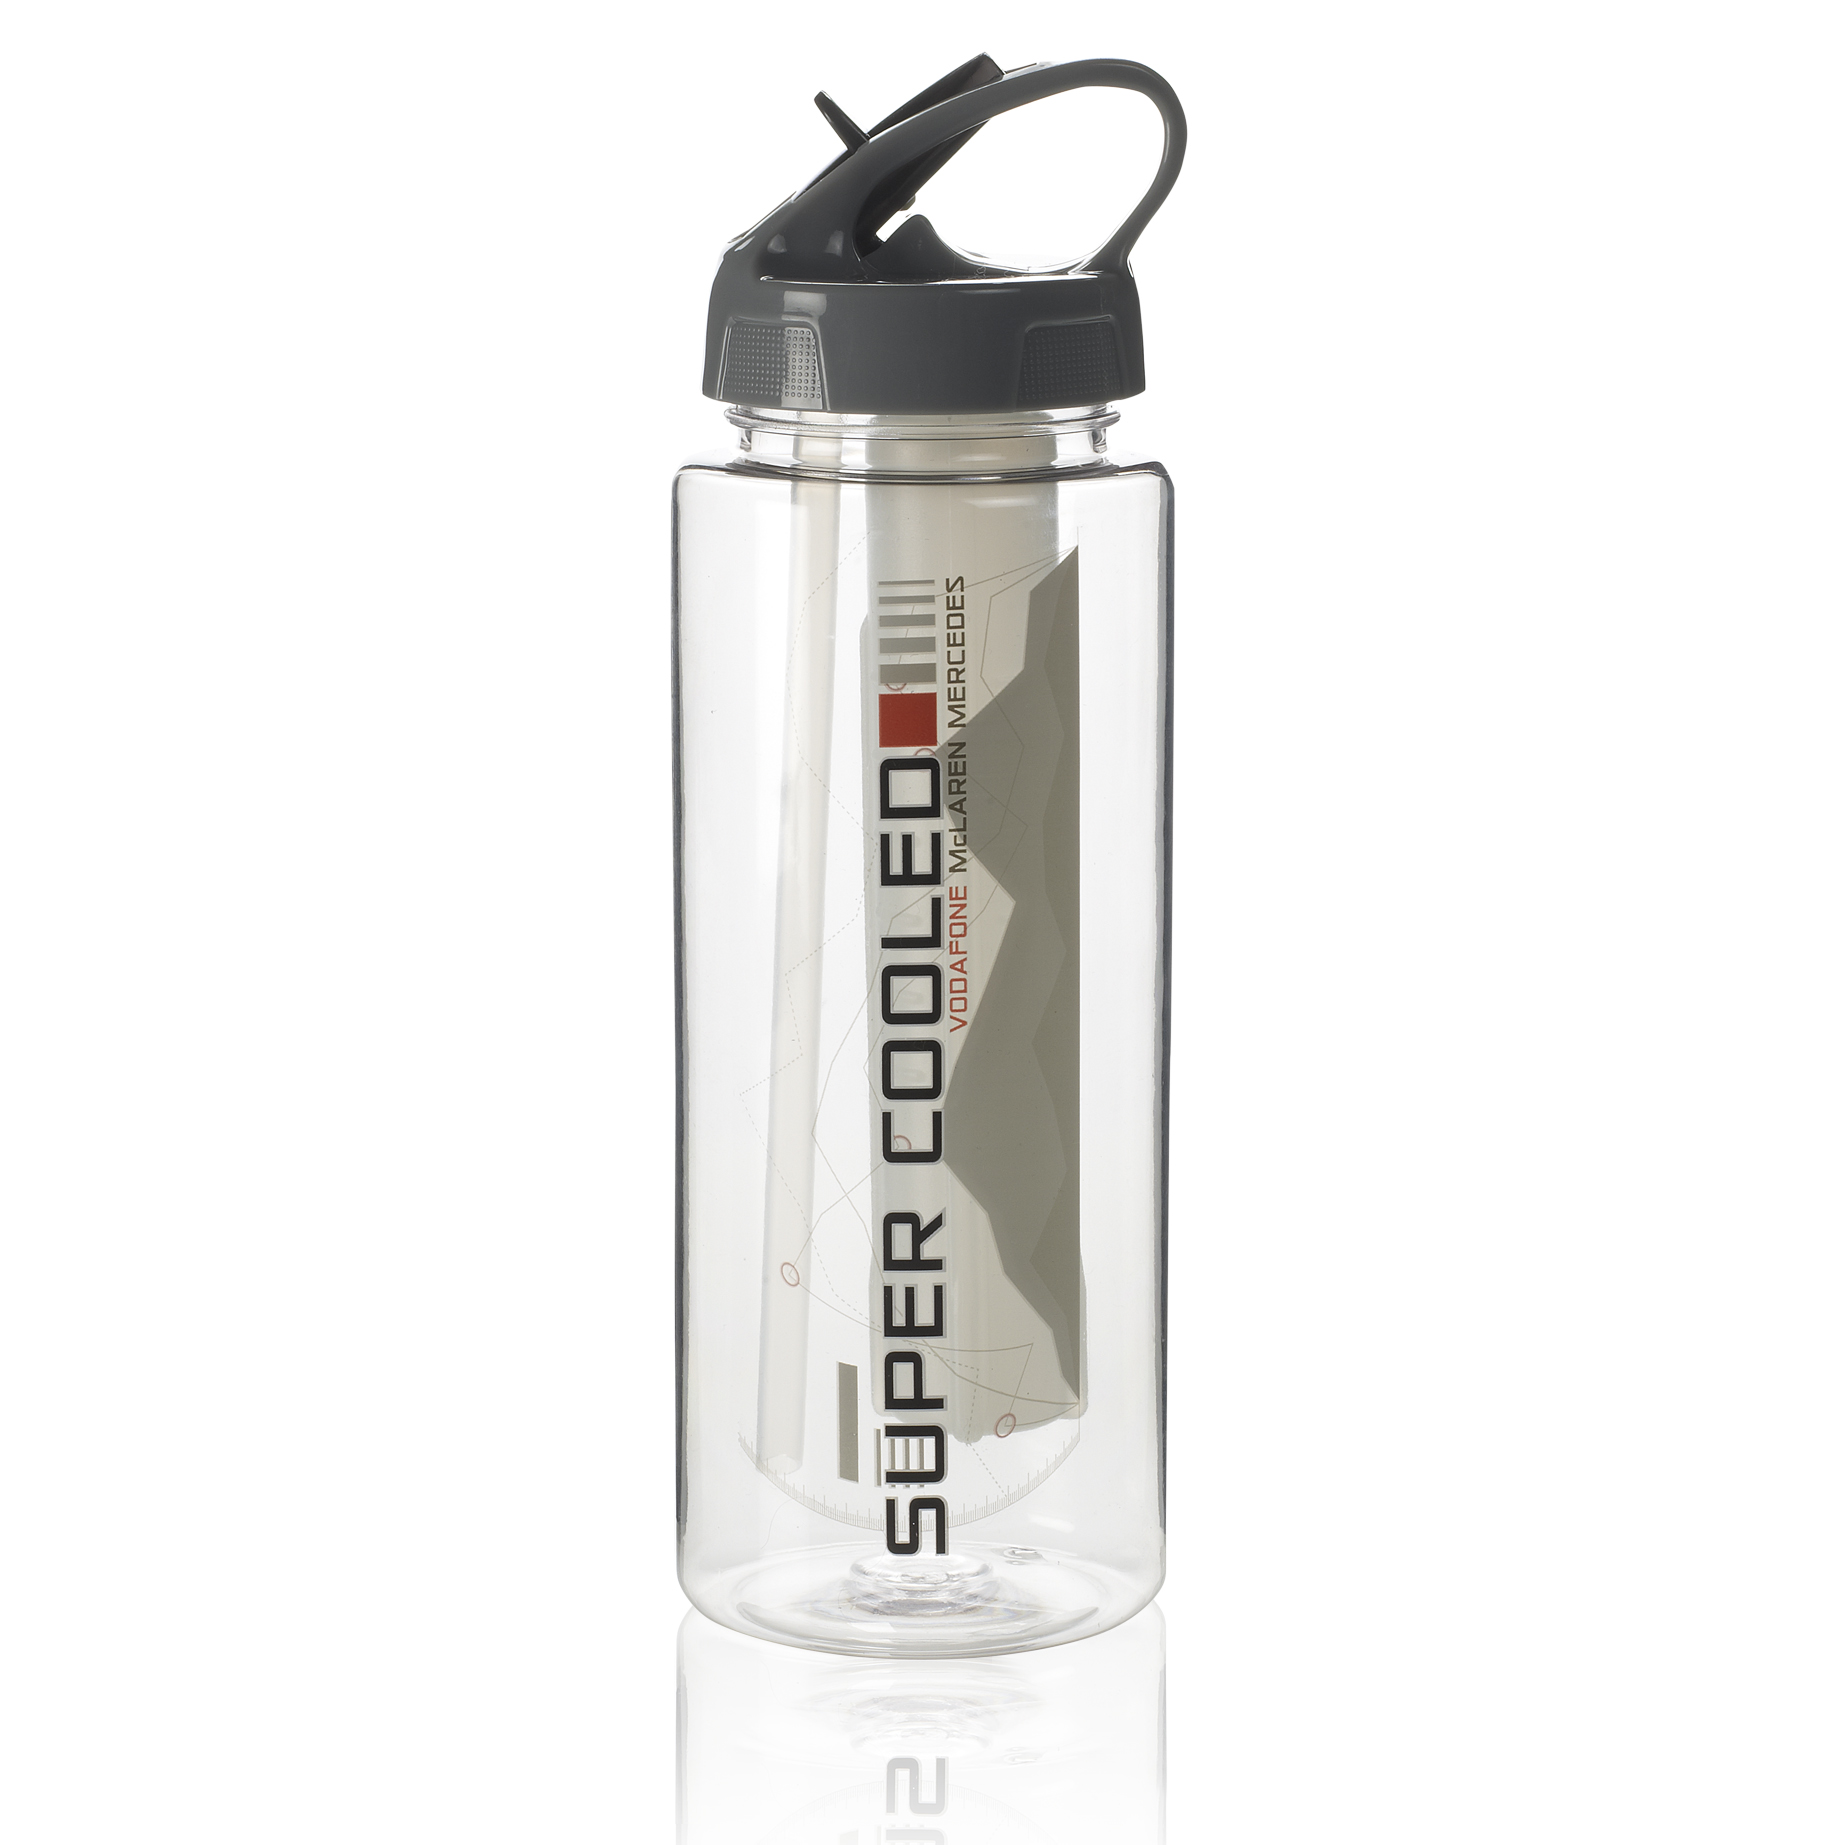 Vodafone McLaren Mercedes Water Bottle